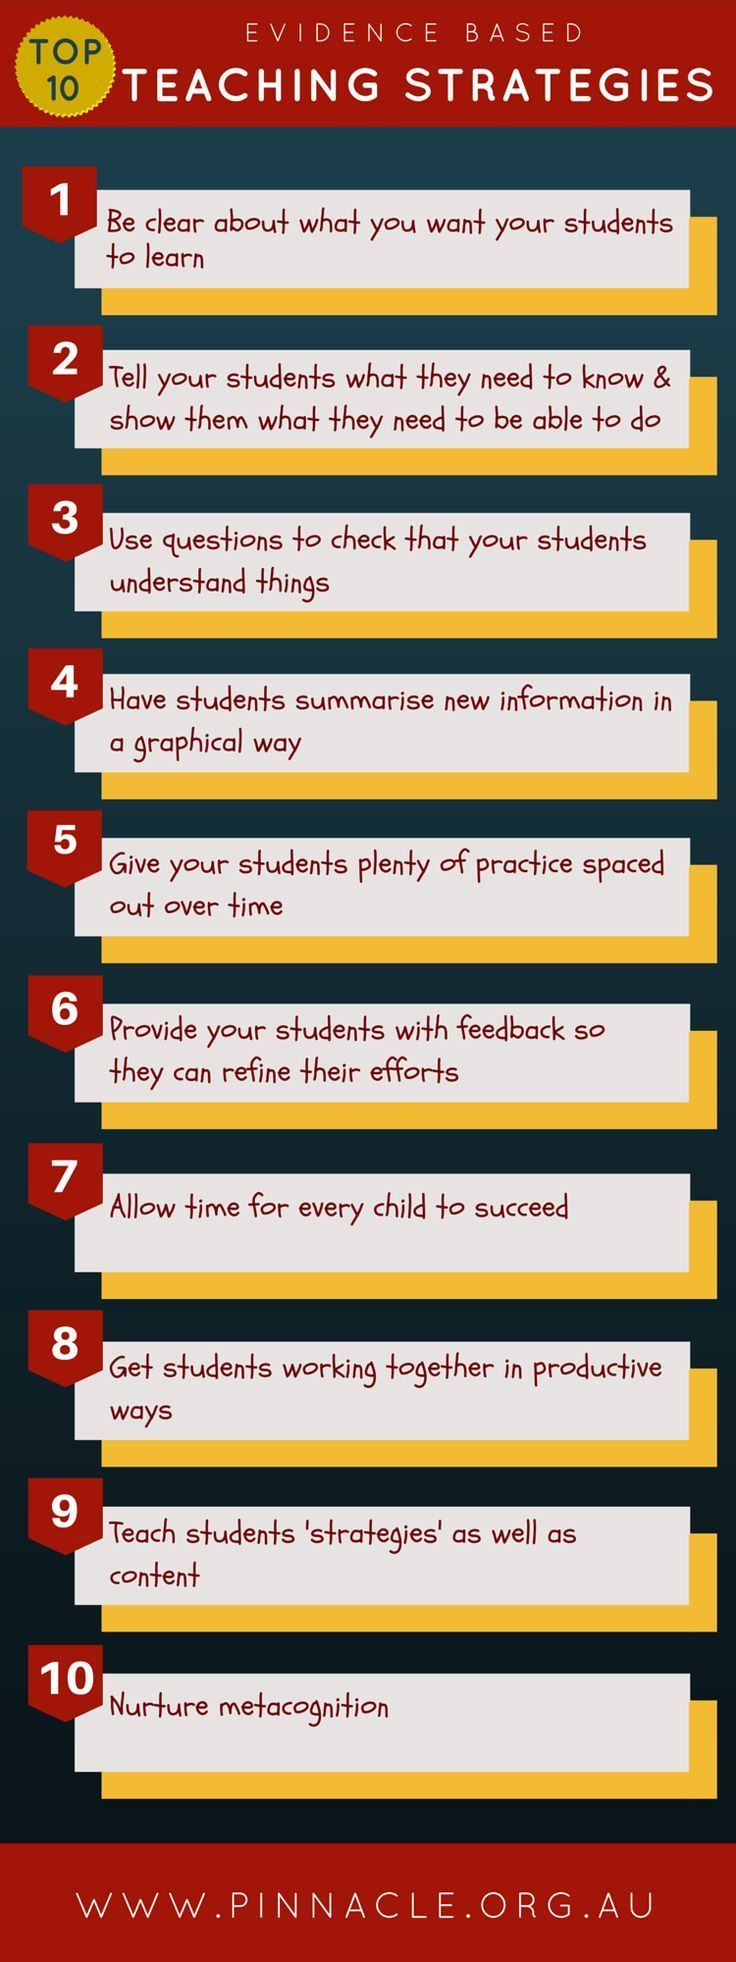 top 10 Evidence Based Teaching Strategies